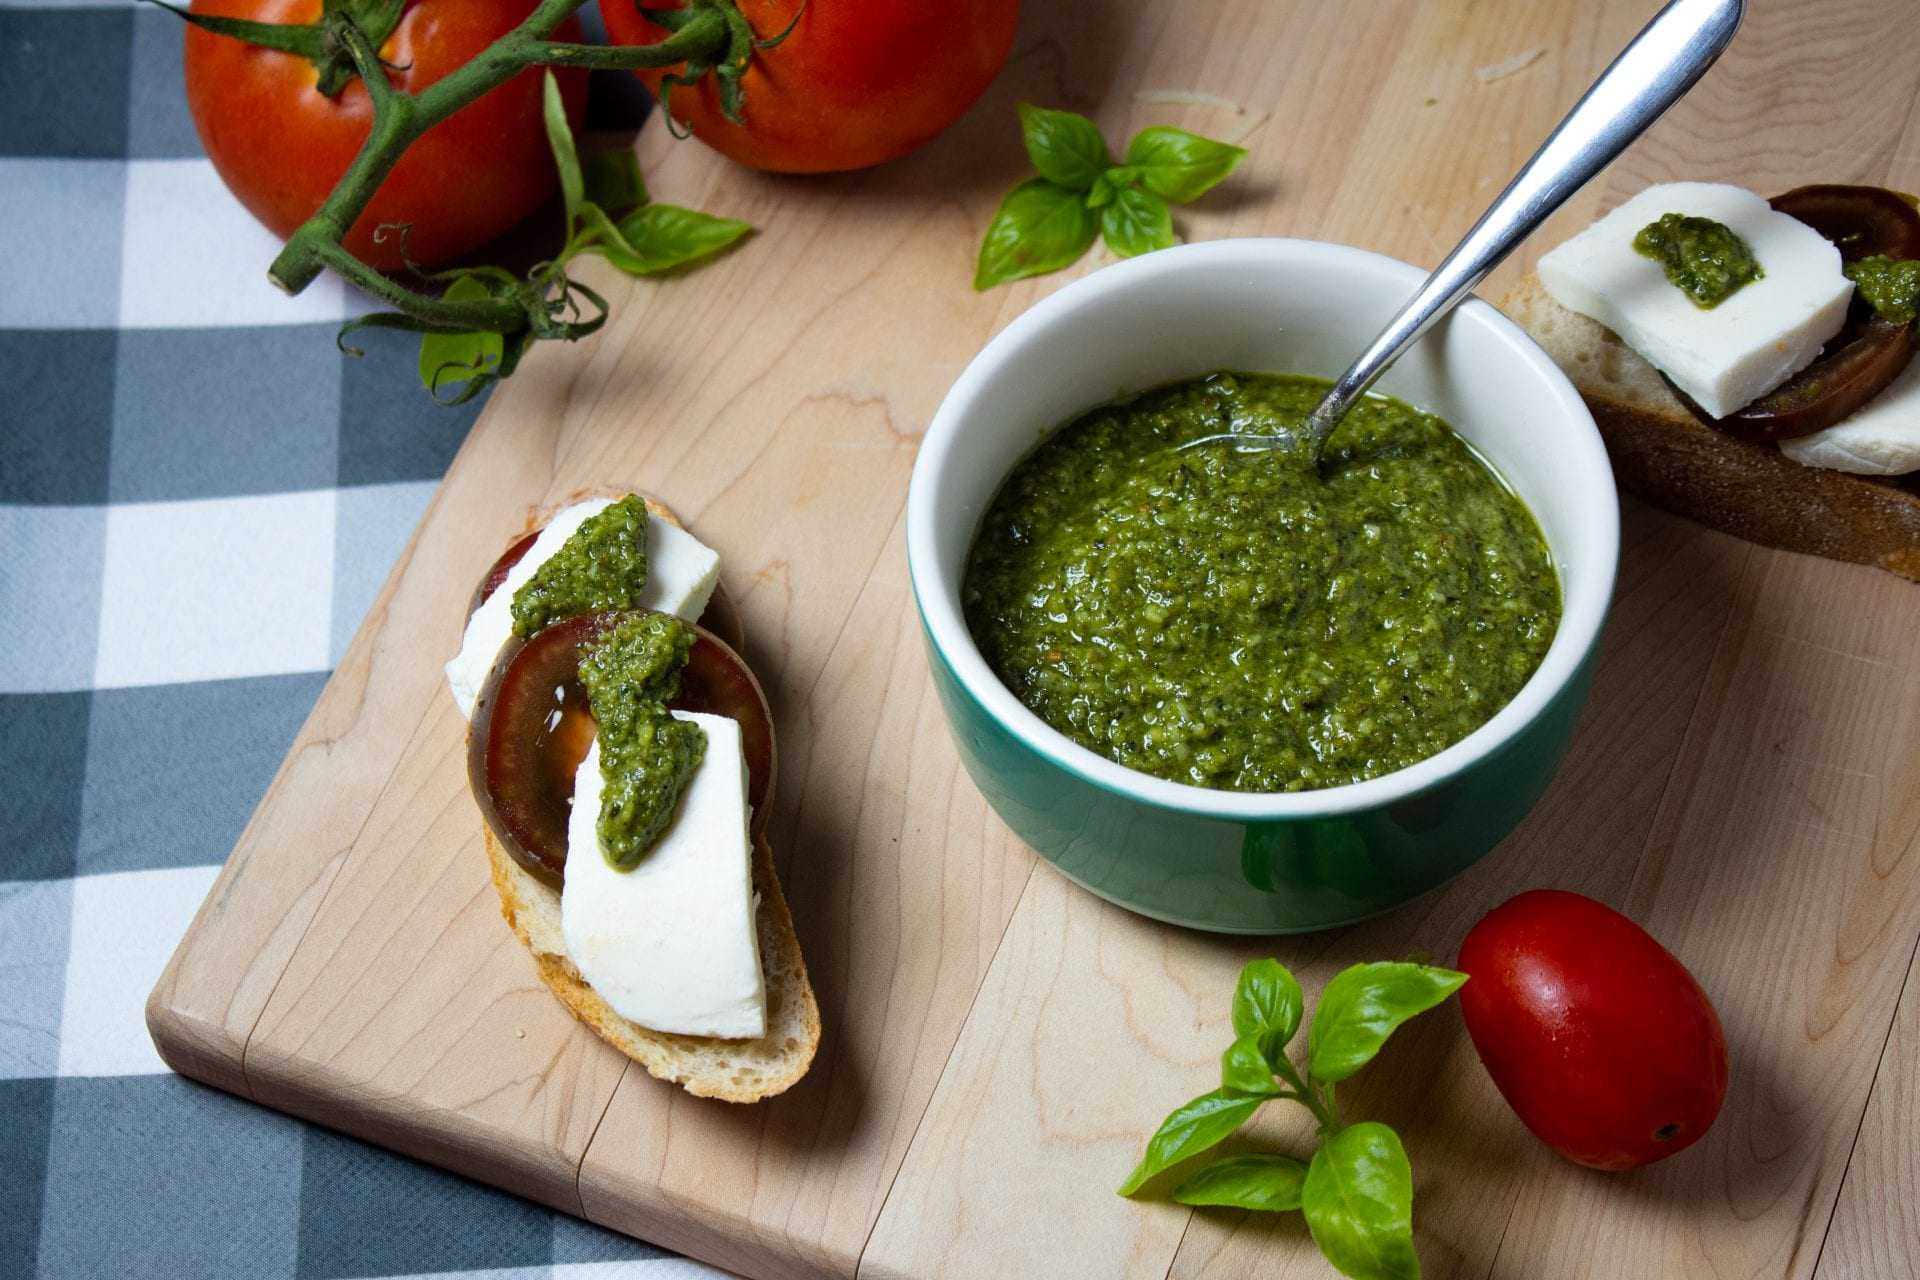 Olive Oil and Basil Pesto with Walnuts and Parmesan